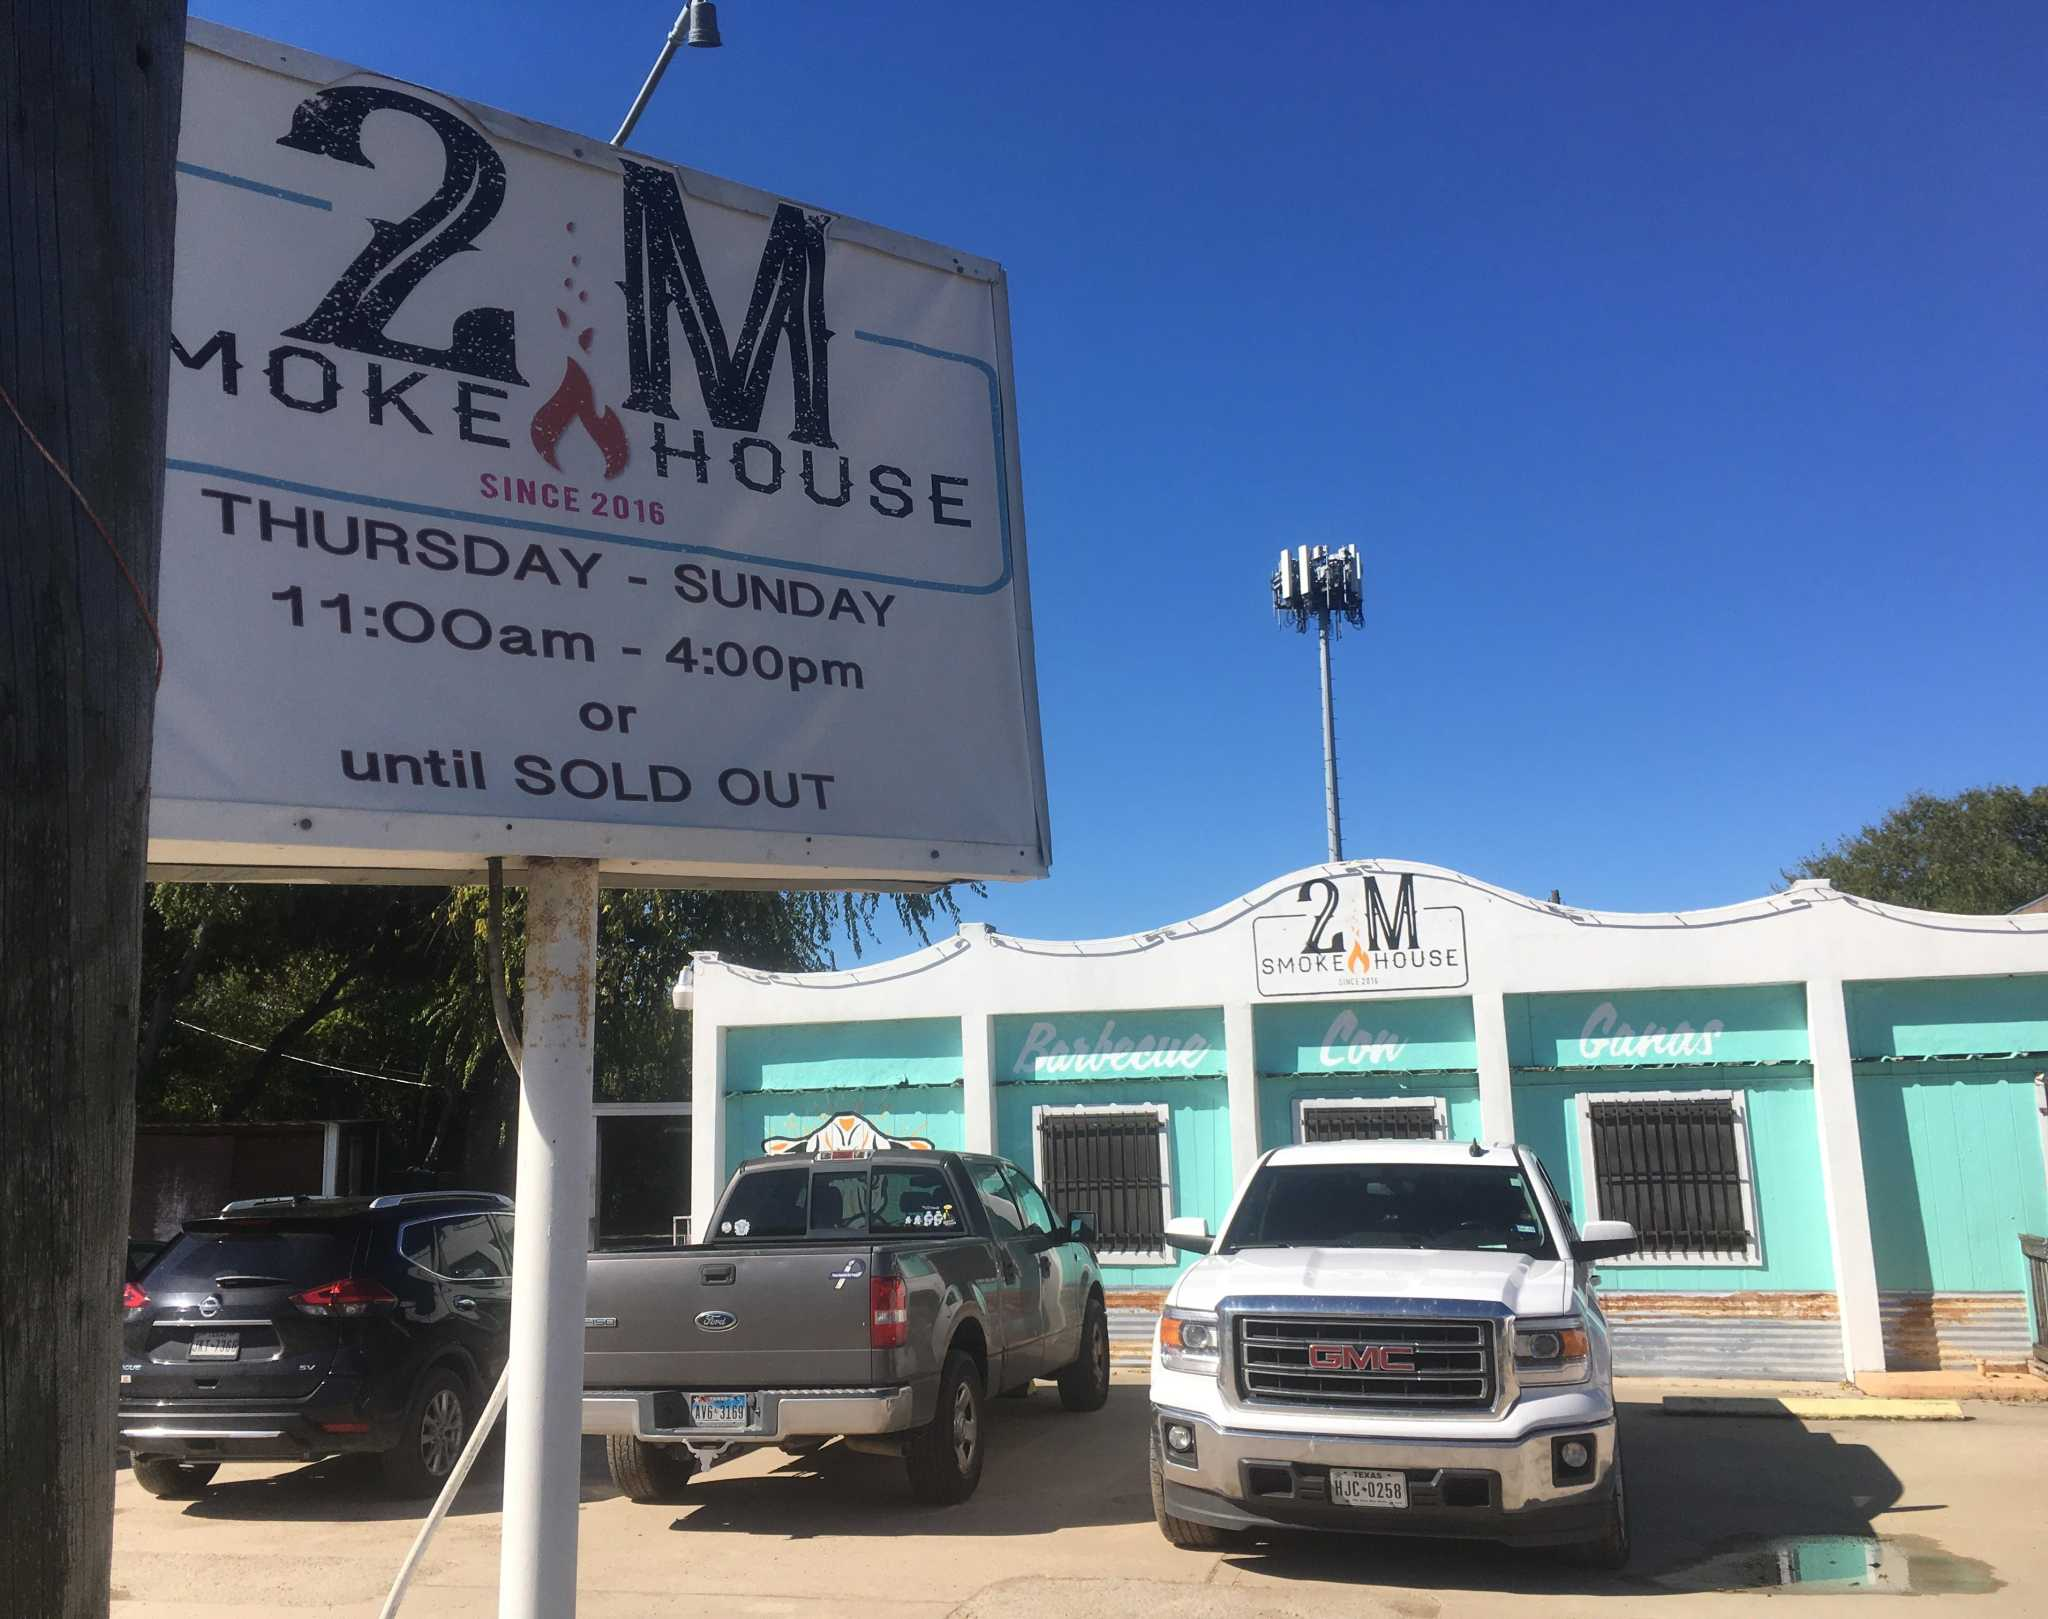 S.A.'s 2M Smokehouse offering free pulled pork tacos to furloughed government employees